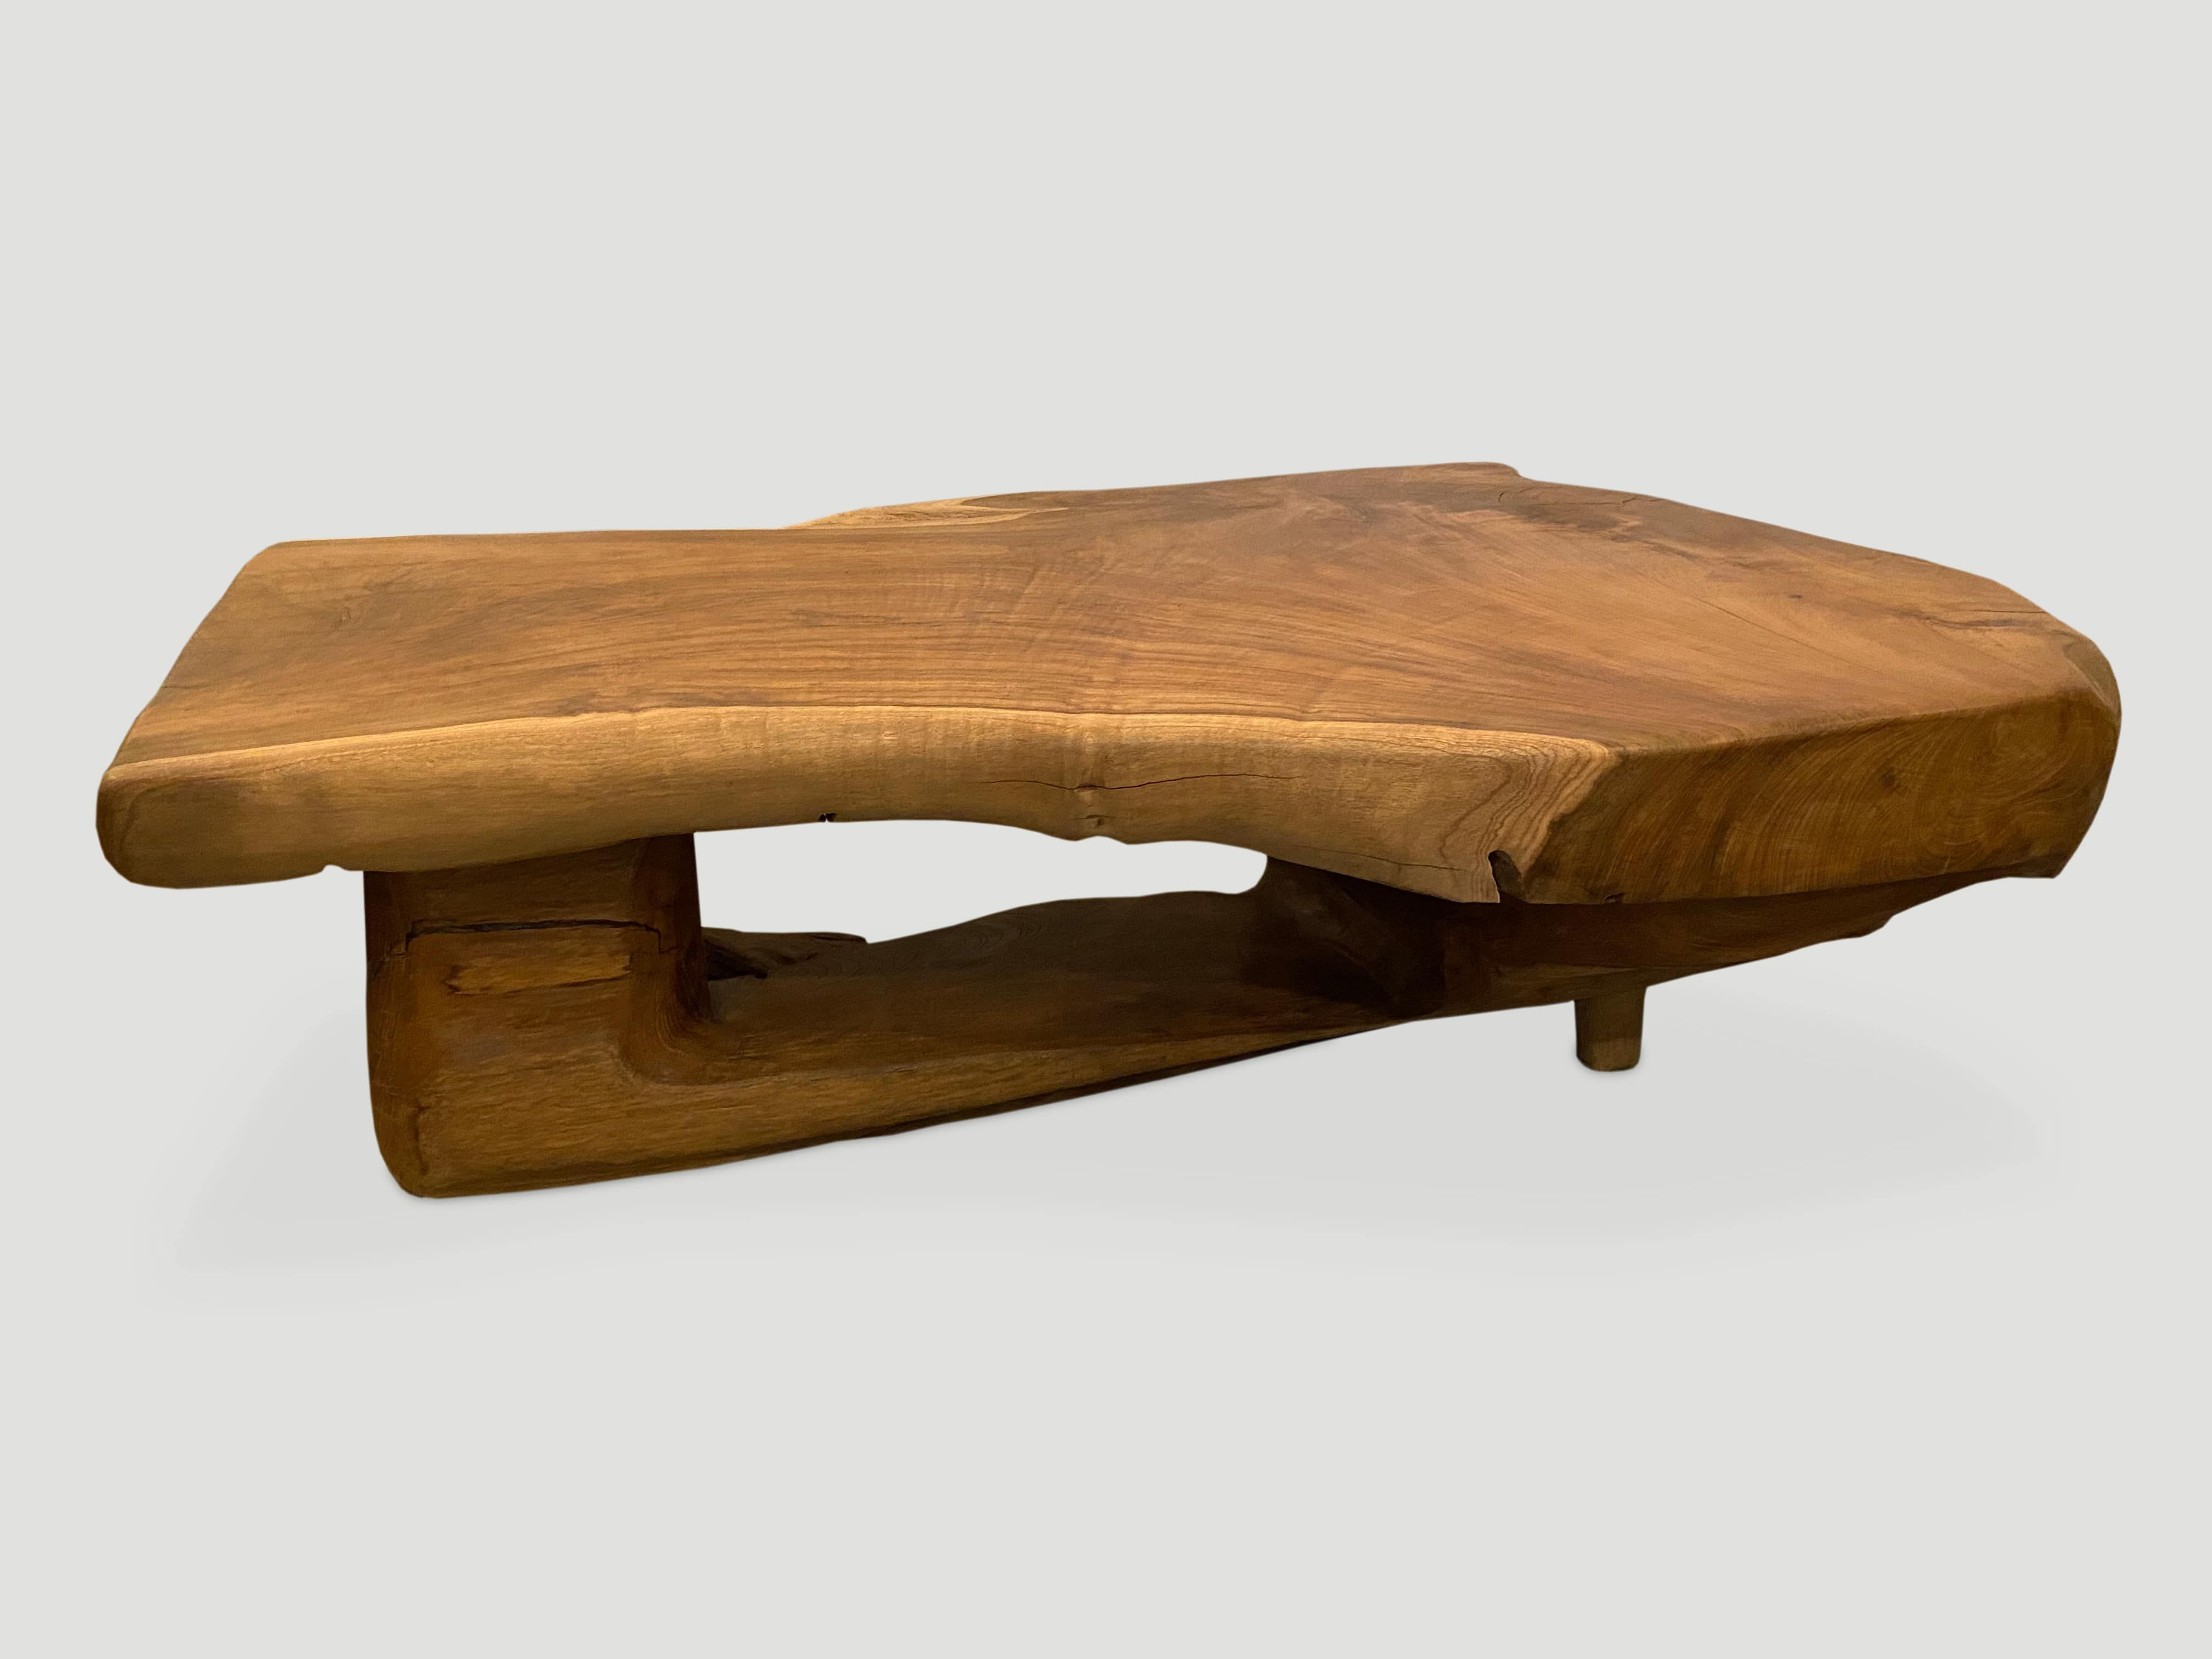 Coffee Tables Andrianna Shamaris In 2021 Coffee Table Table Live Edge Coffee Table [ 3024 x 4032 Pixel ]